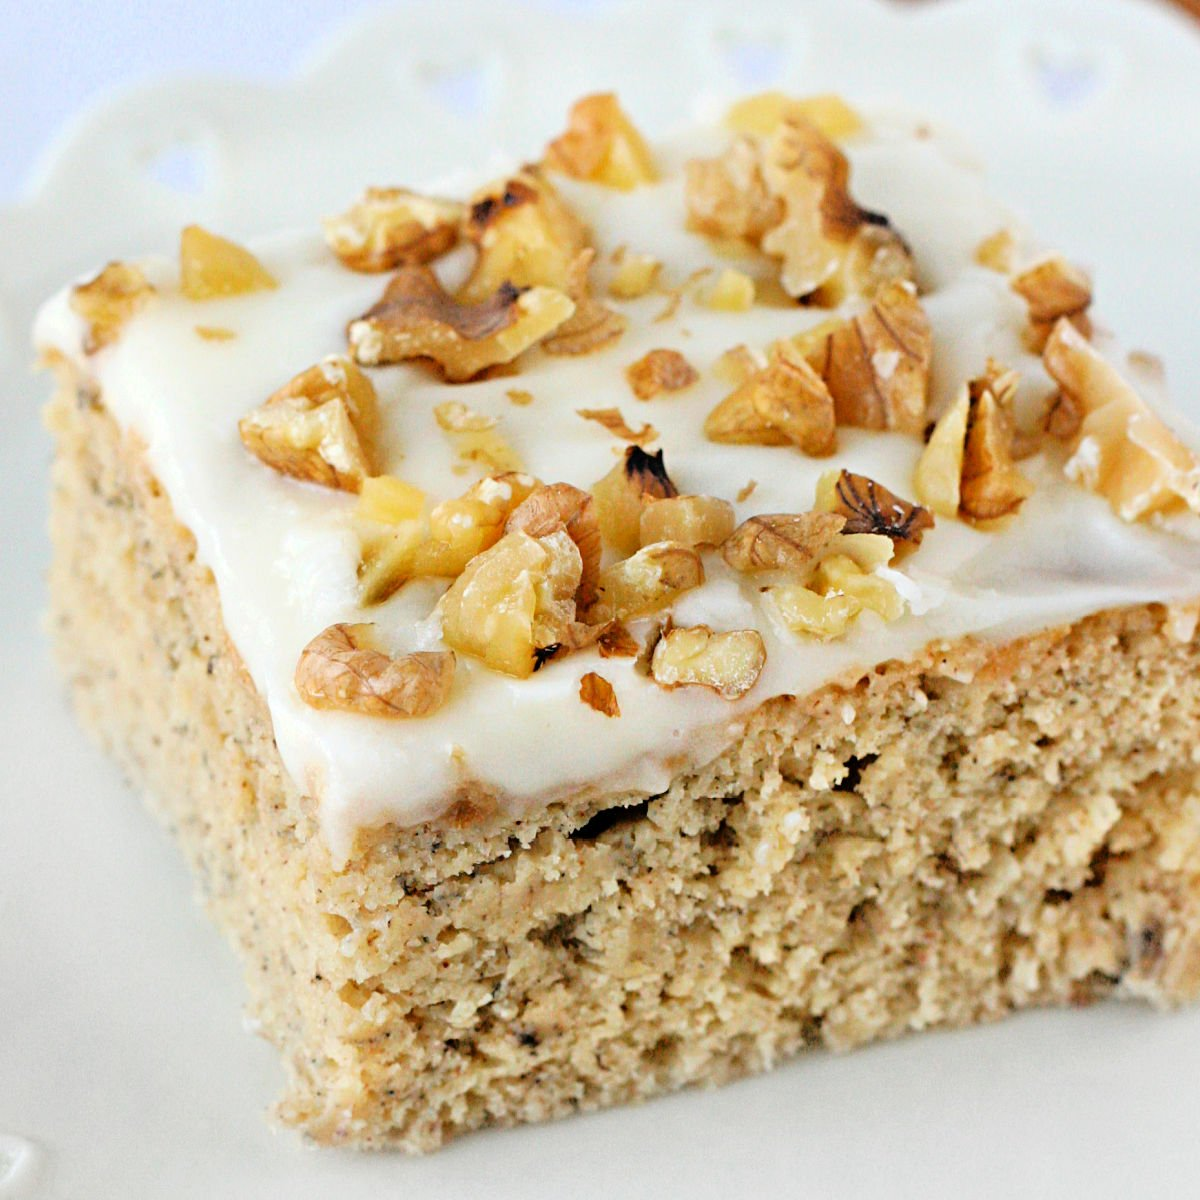 piece of banana cake with cream cheese frosting and walnuts on top sitting on white plate.